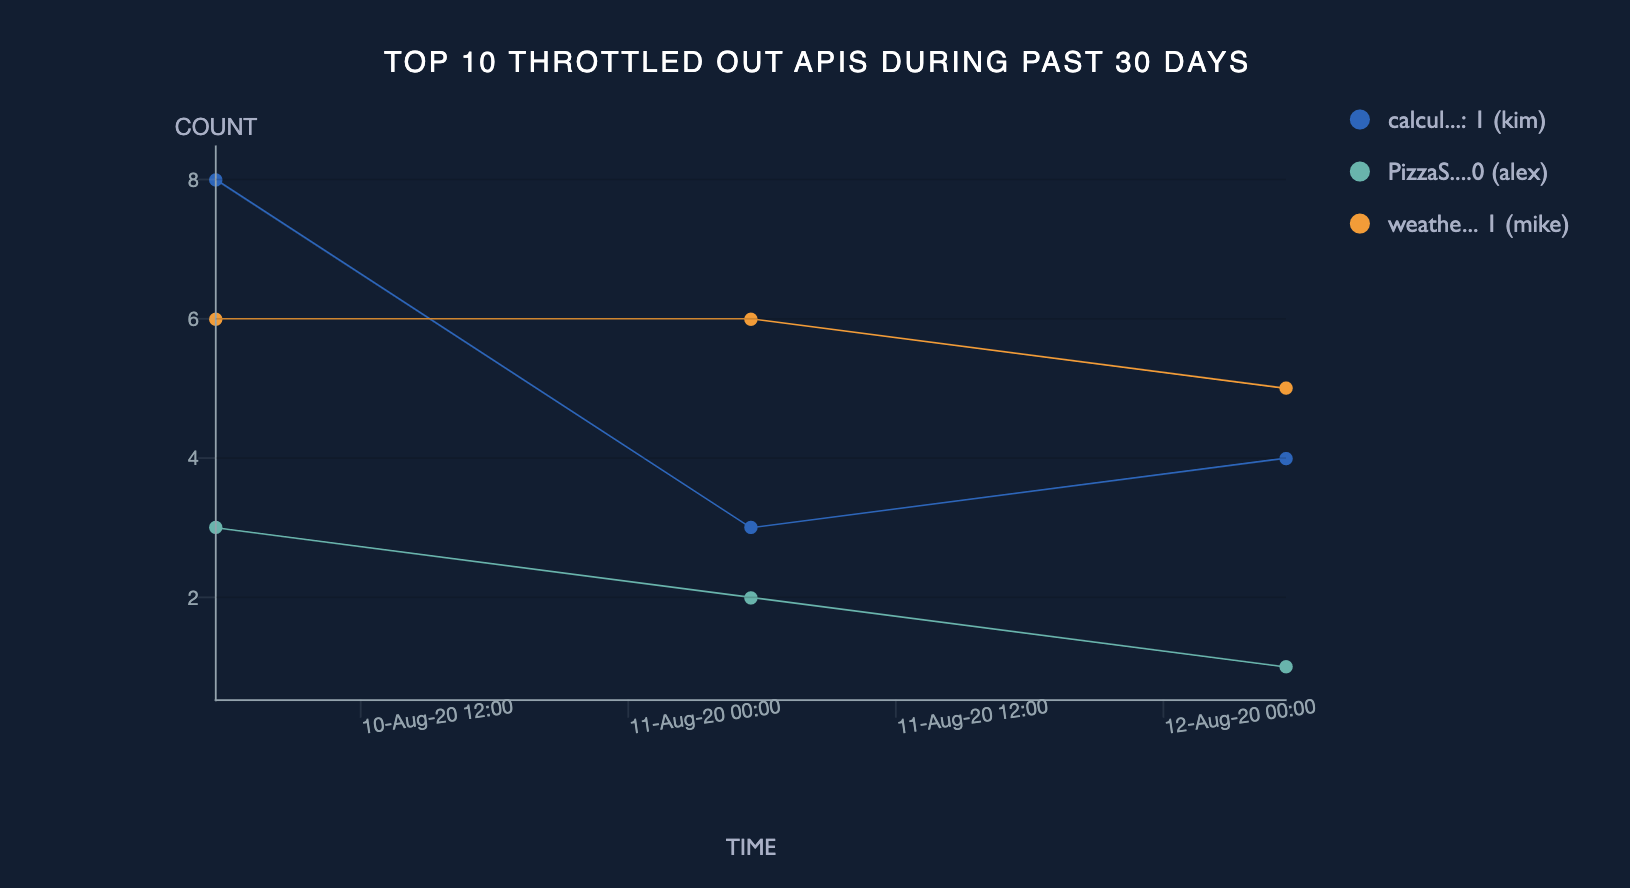 Top 10 throttle out APIs during past 30 days